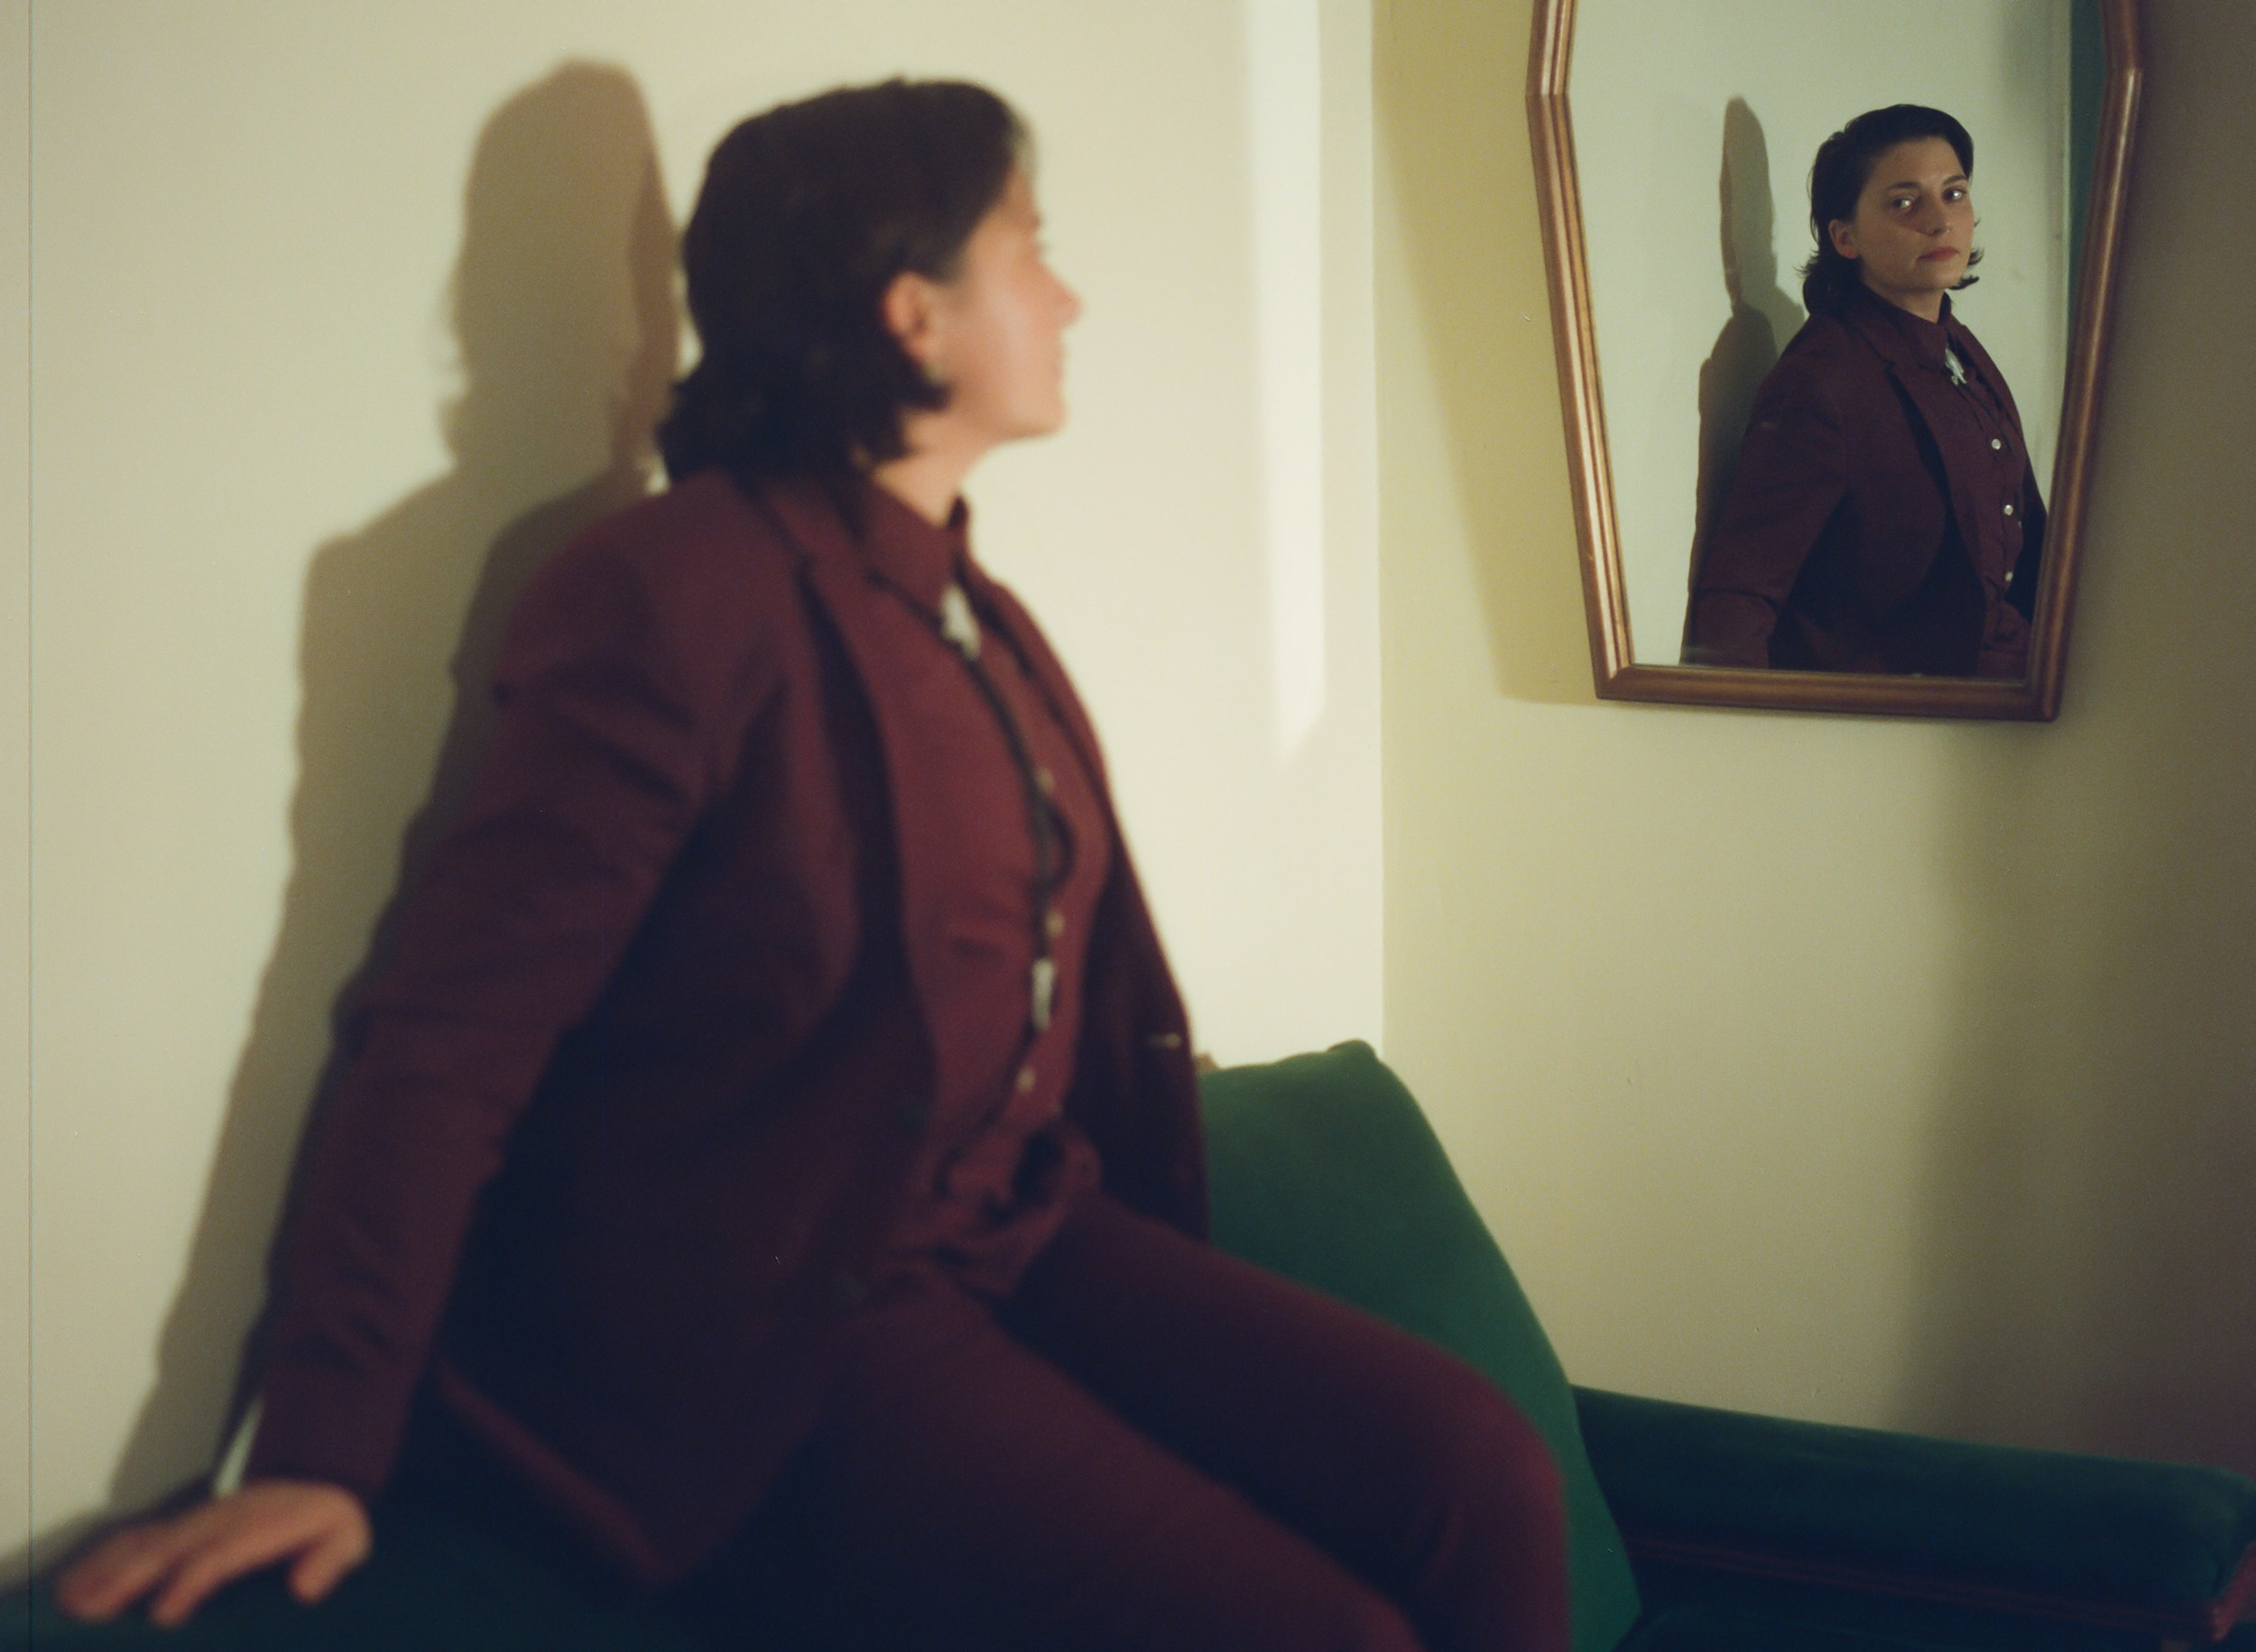 Rosie dressed in all an maroon suit, seated on a bench, looking into a coffin shaped mirror where you see their face reflected